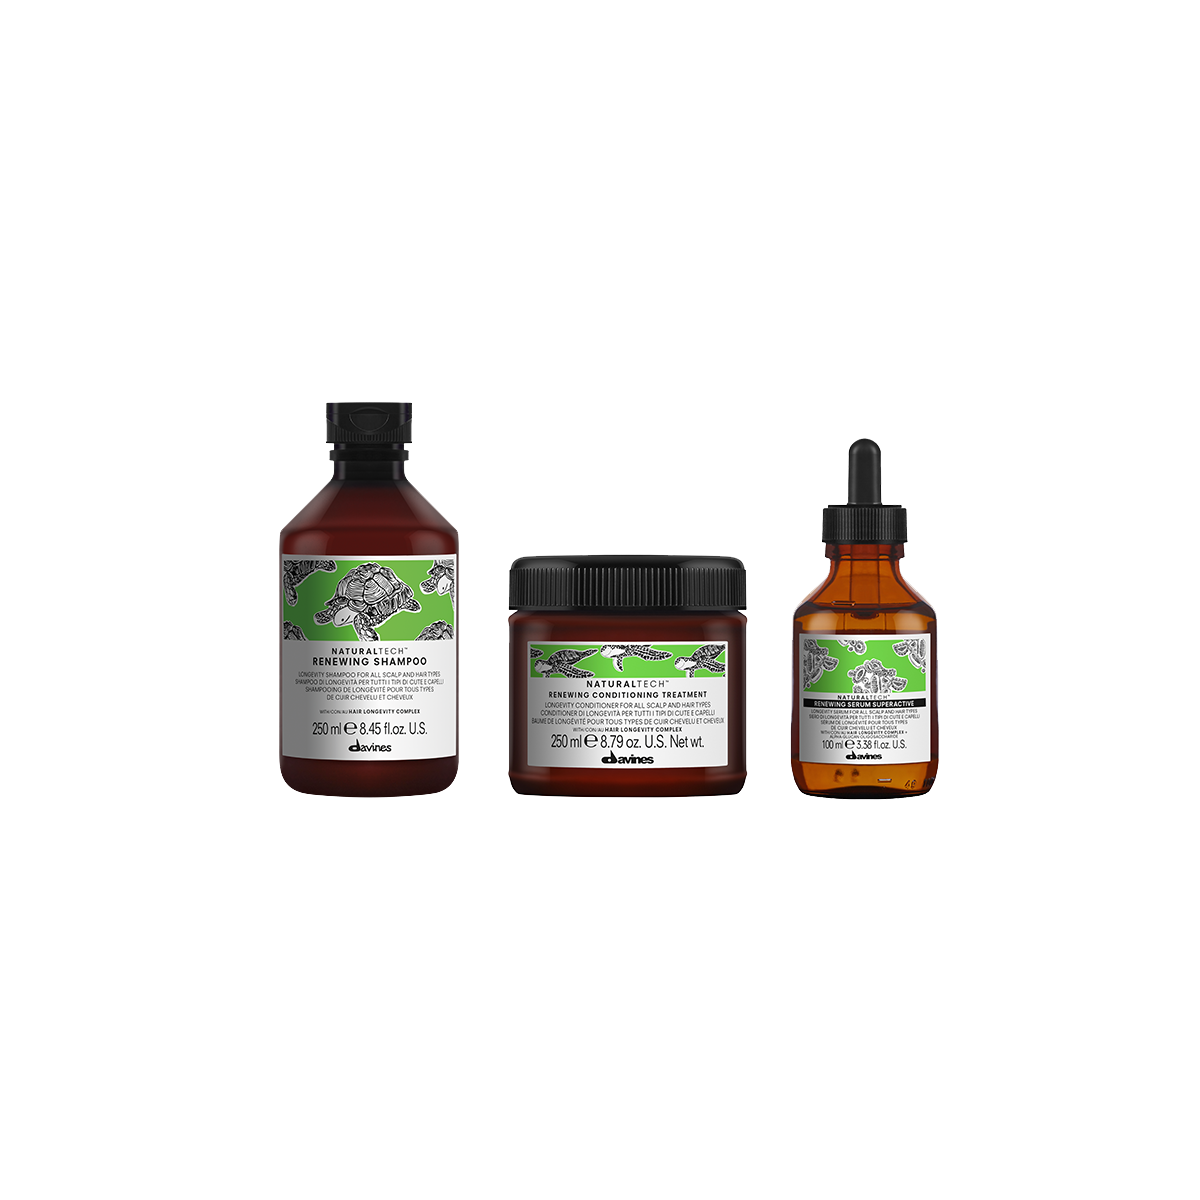 Ageing Hair & Scalp Regime